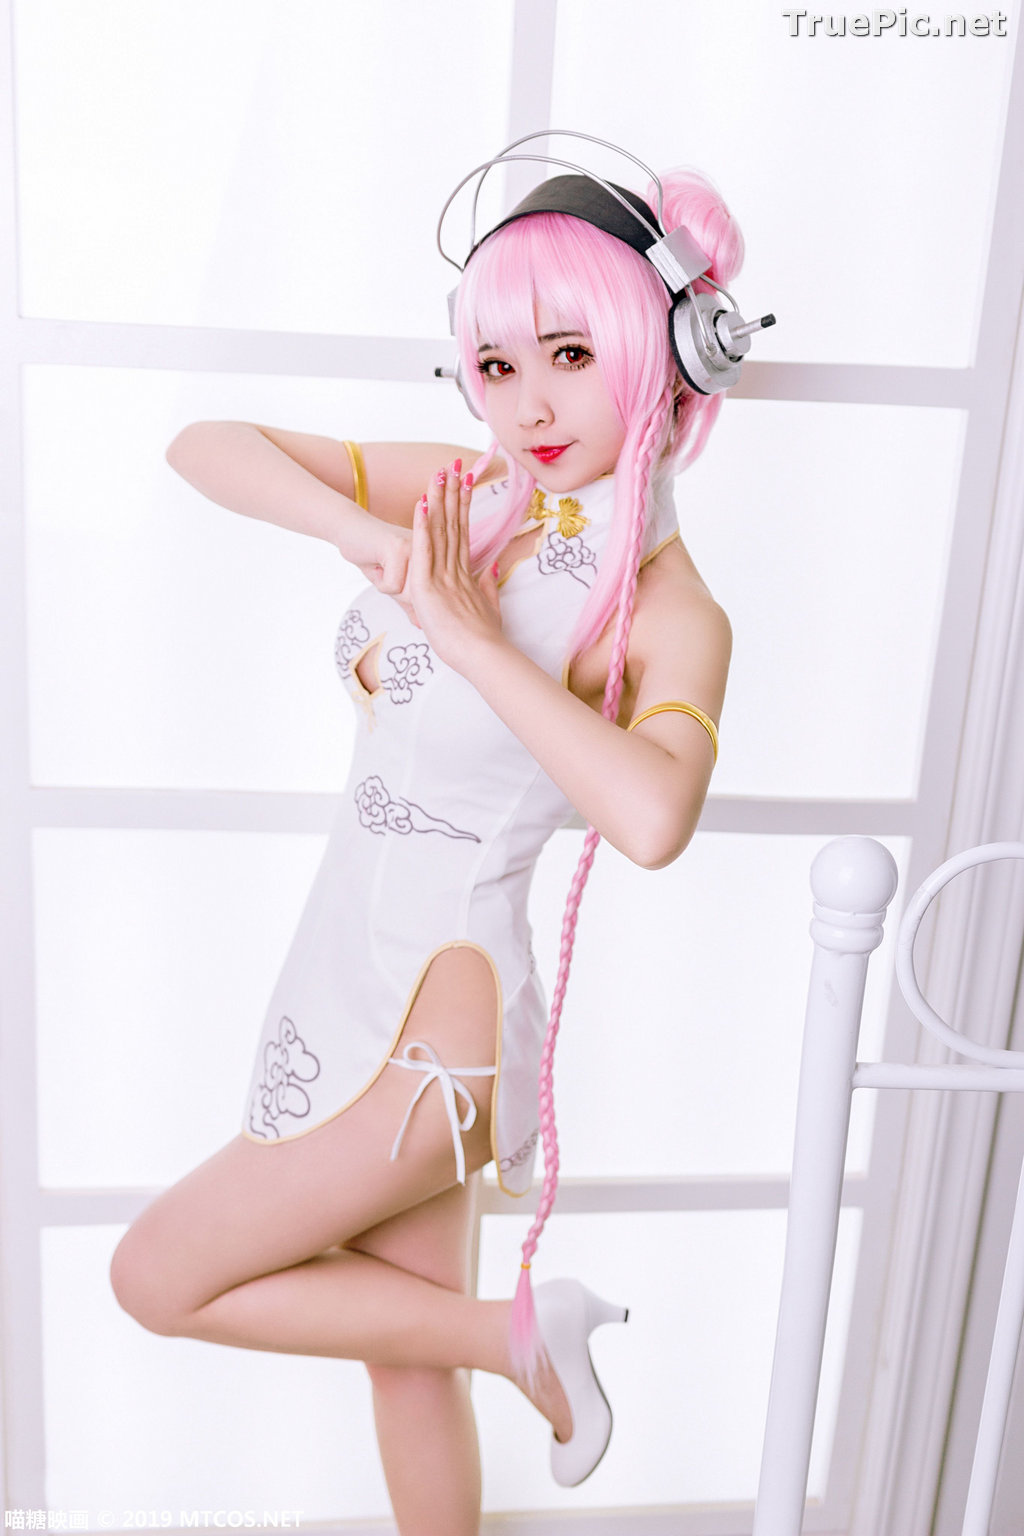 Image [MTCos] 喵糖映画 Vol.050 - Chinese Cute Model - Lovely Pink-haired - TruePic.net - Picture-8